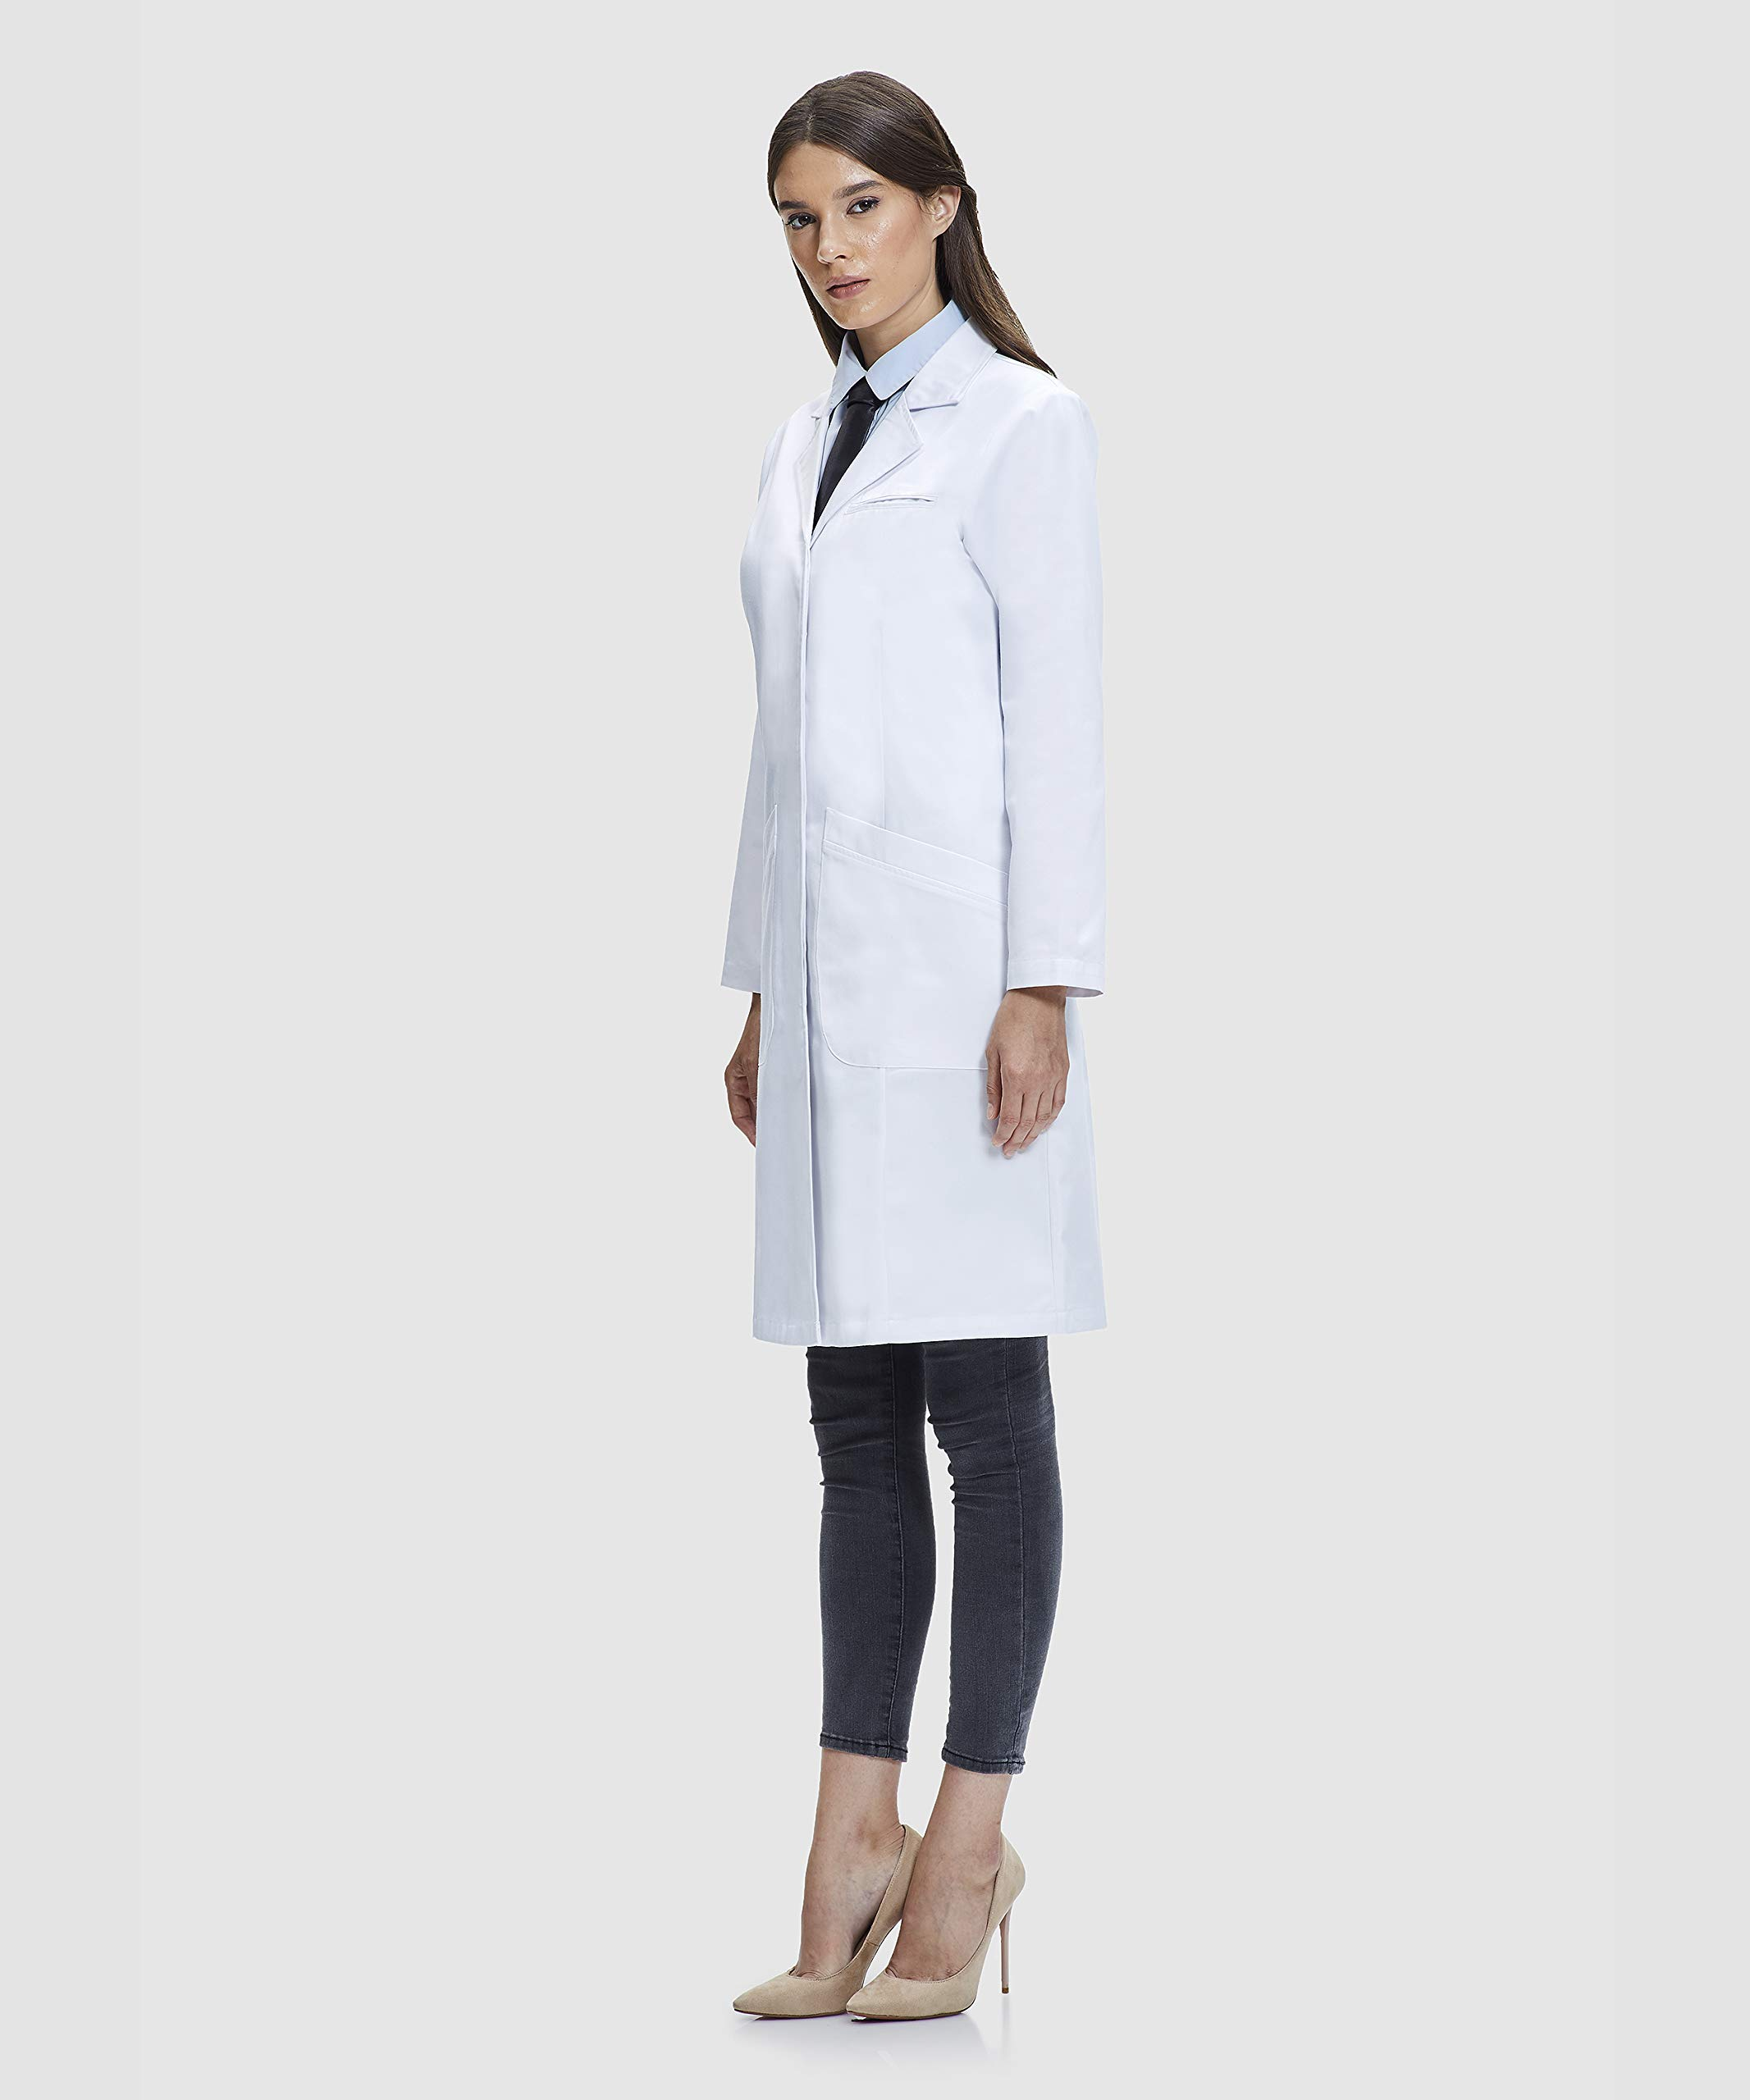 Dr. James Student Lab Coat for Women, 100% Cotton, Classic Fit, Multiple Pockets, White, 37 Inch Length